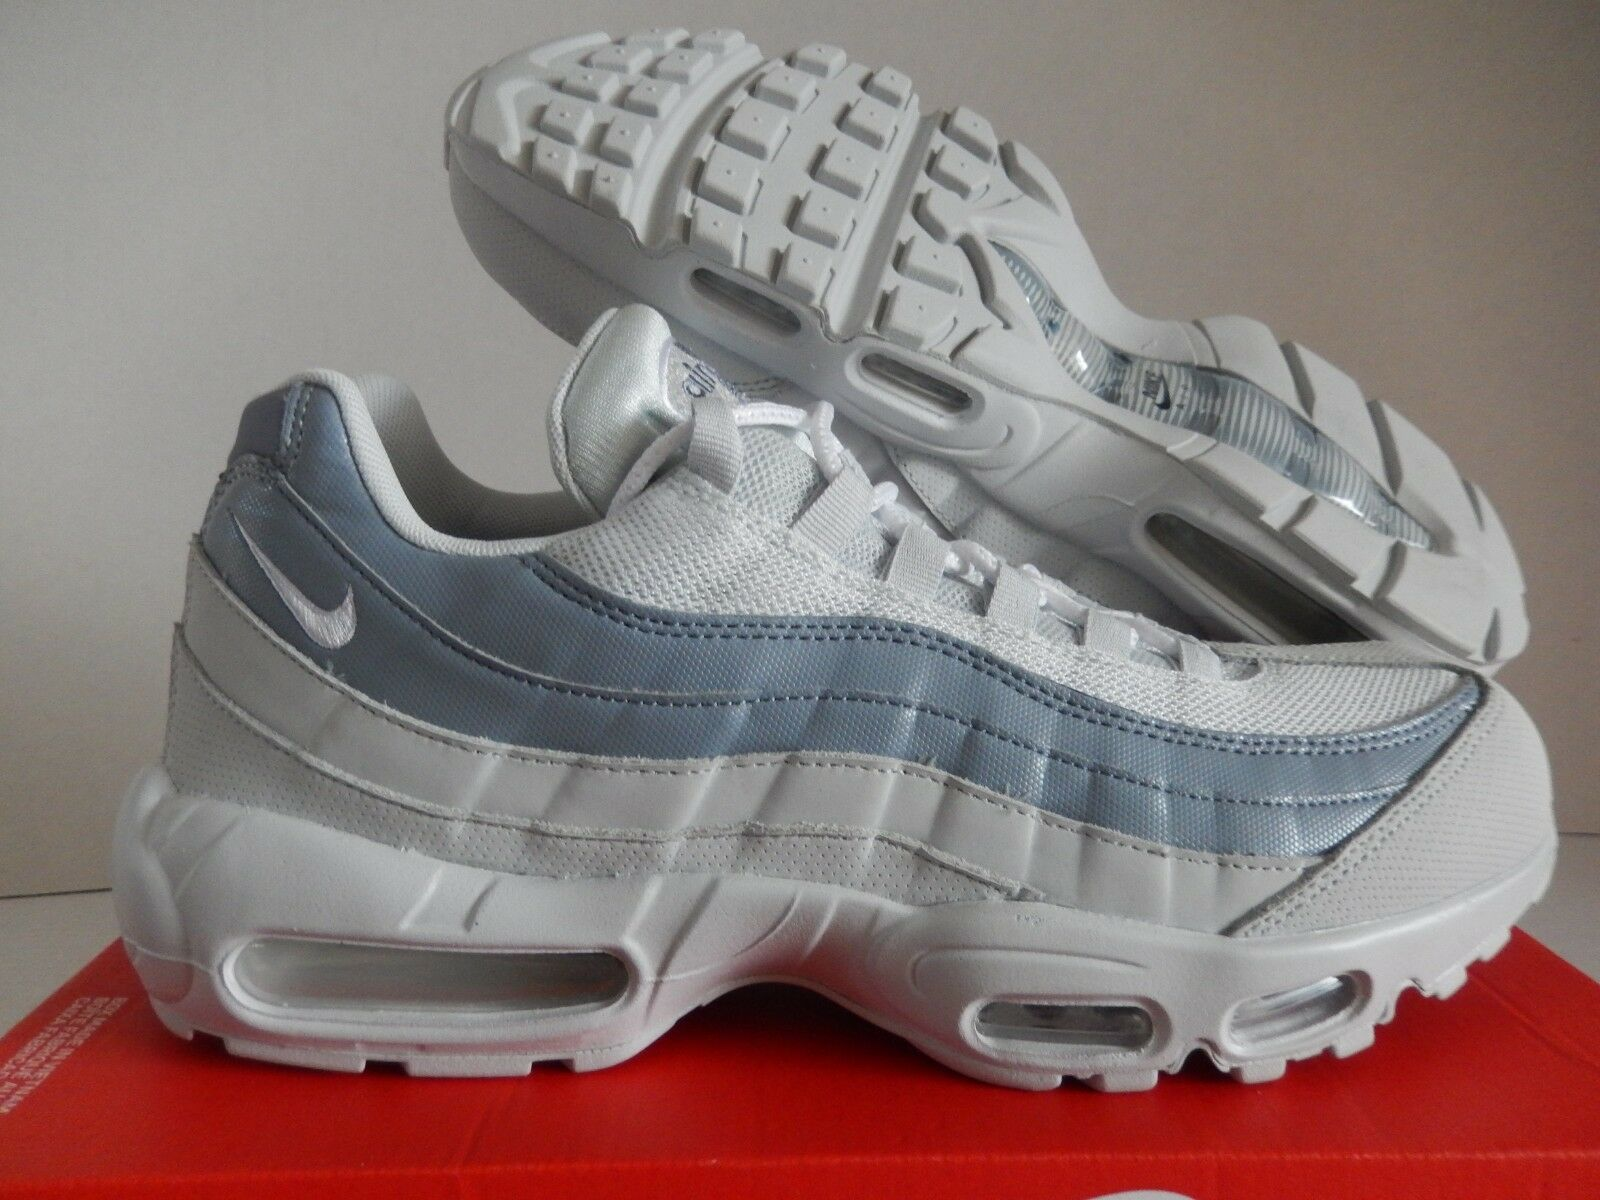 NIKE AIR MAX 95 ESSENTIAL PURE PLATINUM-WHITE SZ 11.5 [749766-036]